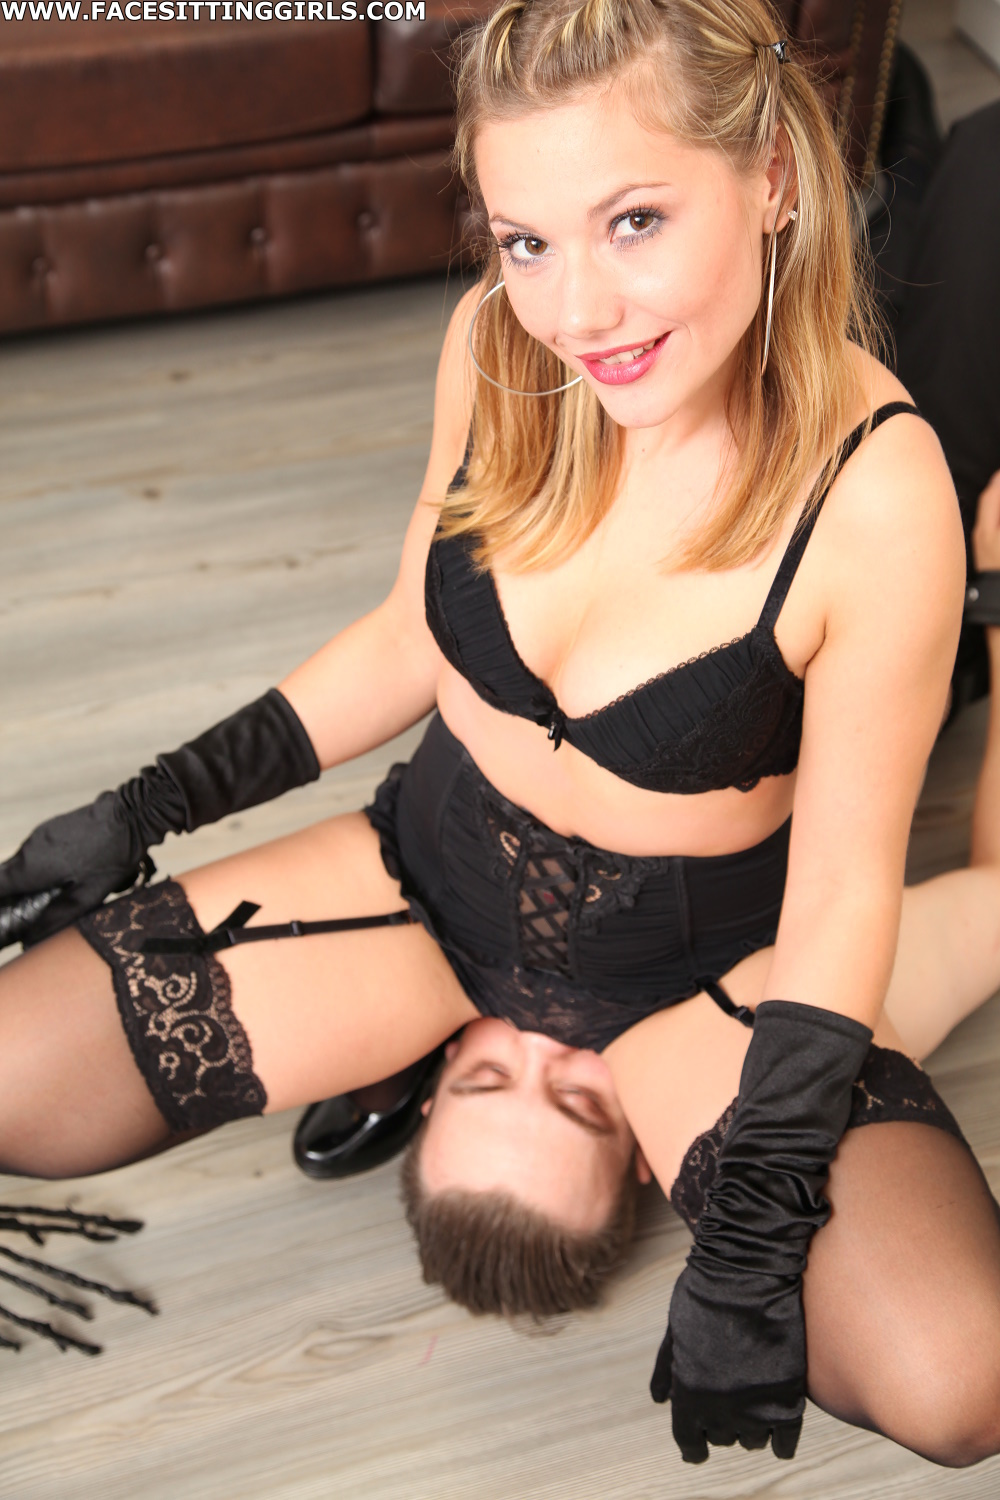 Mistress joyce with young bbc with cuckold creampie cleanup